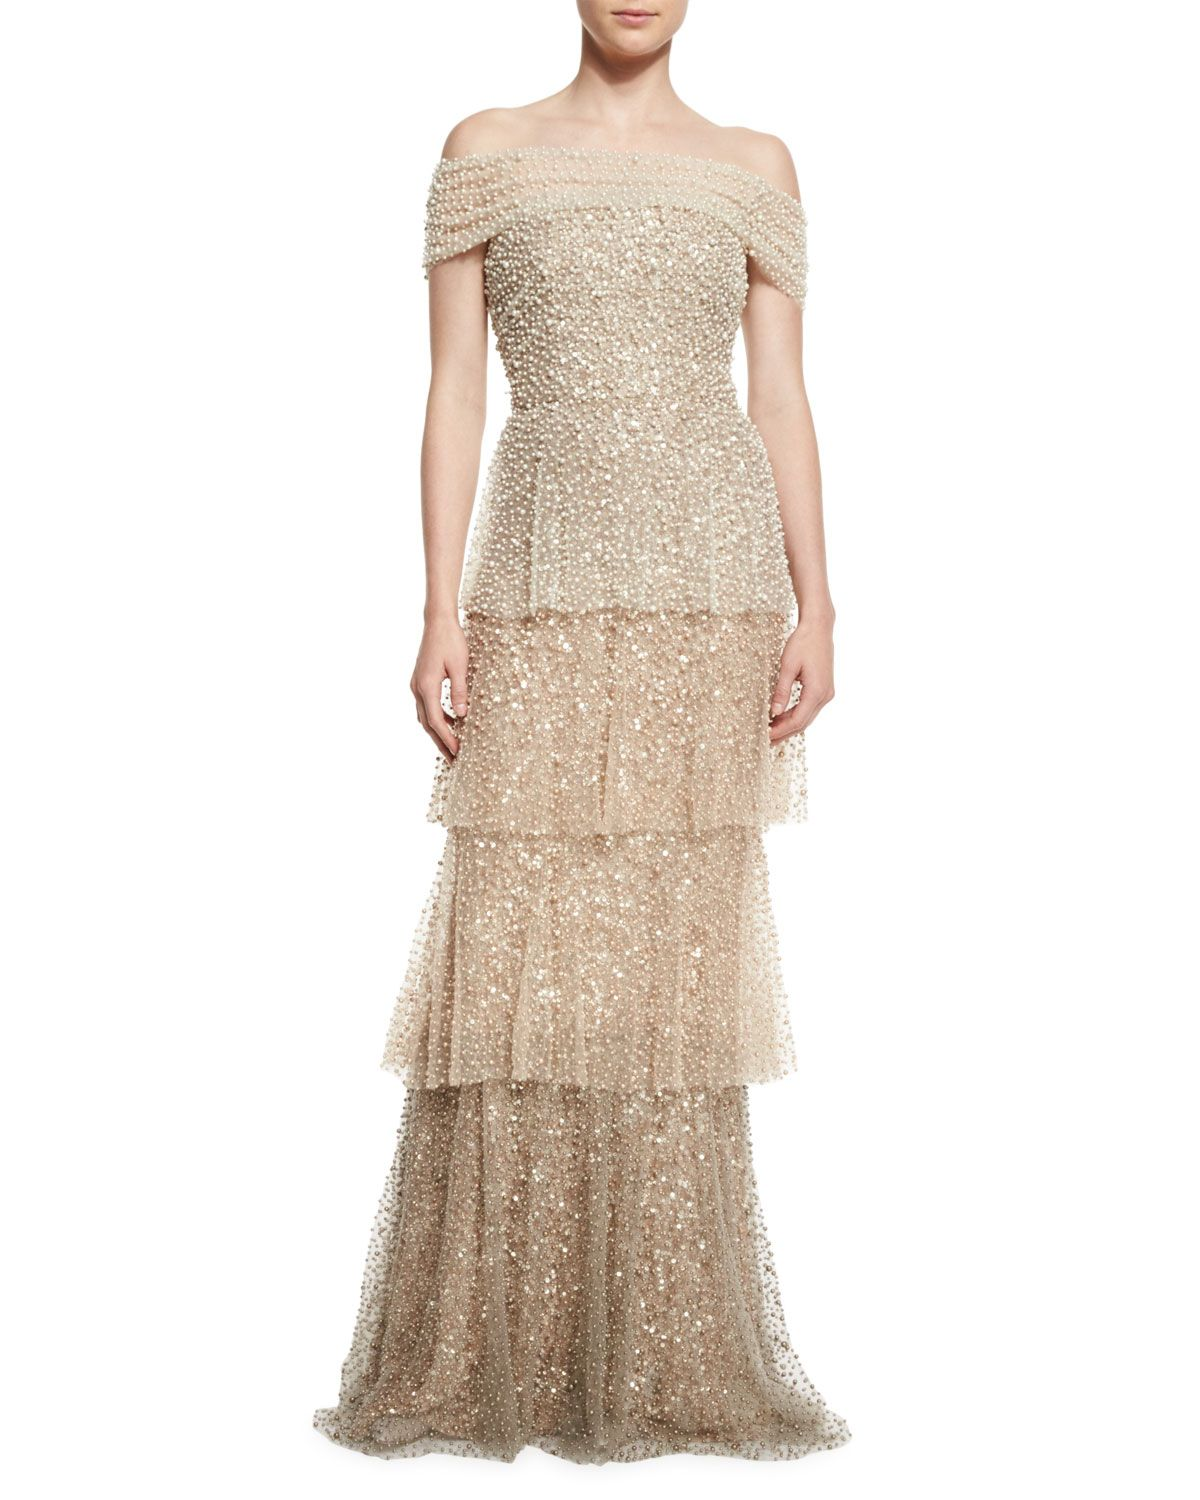 Pearly Ombre Tiered Gown, Gold | Gowns, Neiman marcus and Dresses